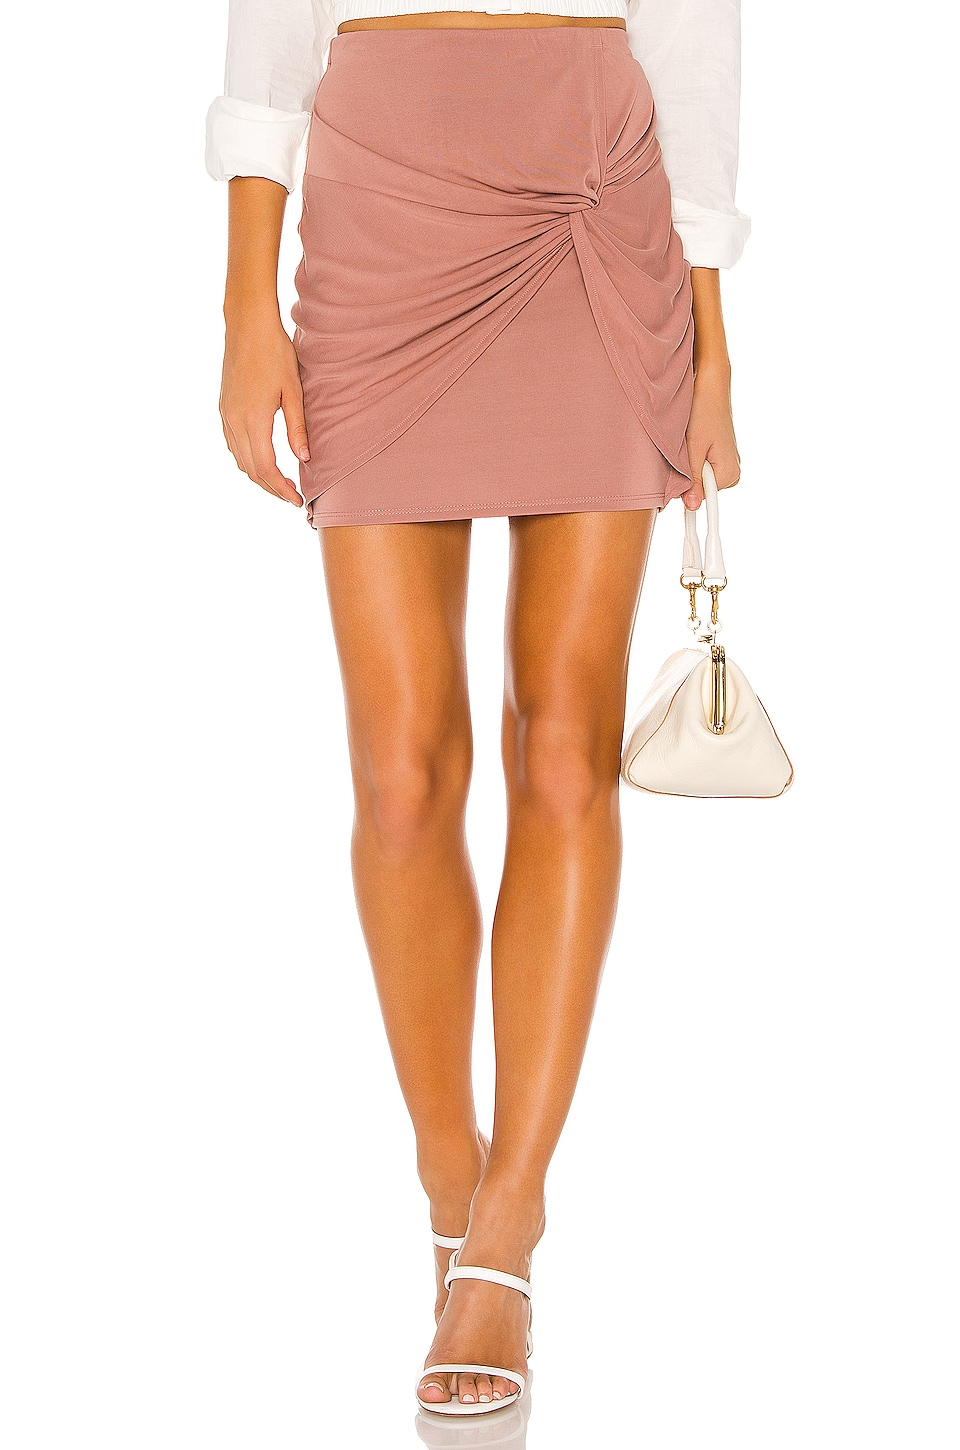 Lovers + Friends Camila Skirt in Mink Pink